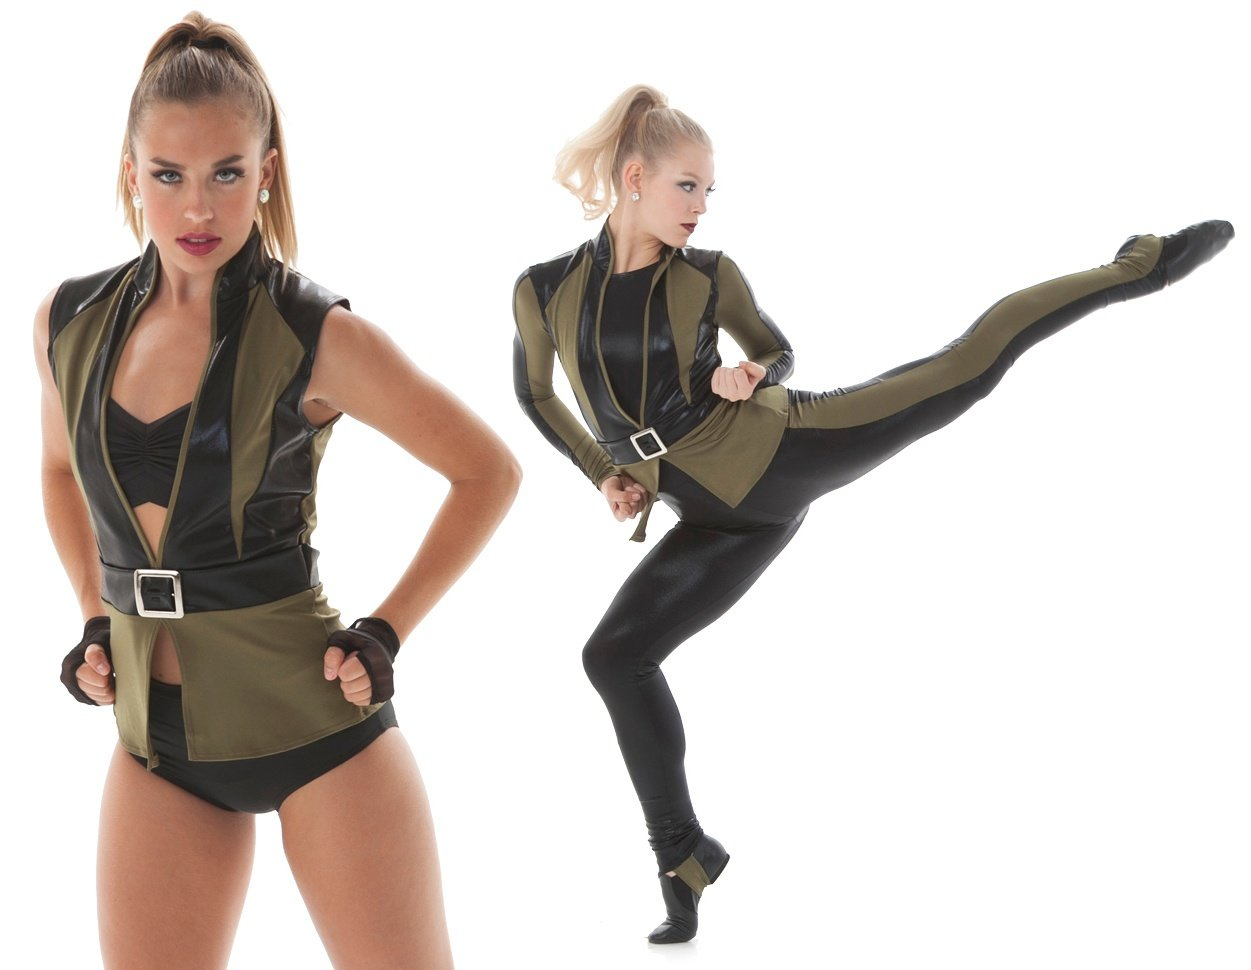 custom dance costume cost biketard unitard